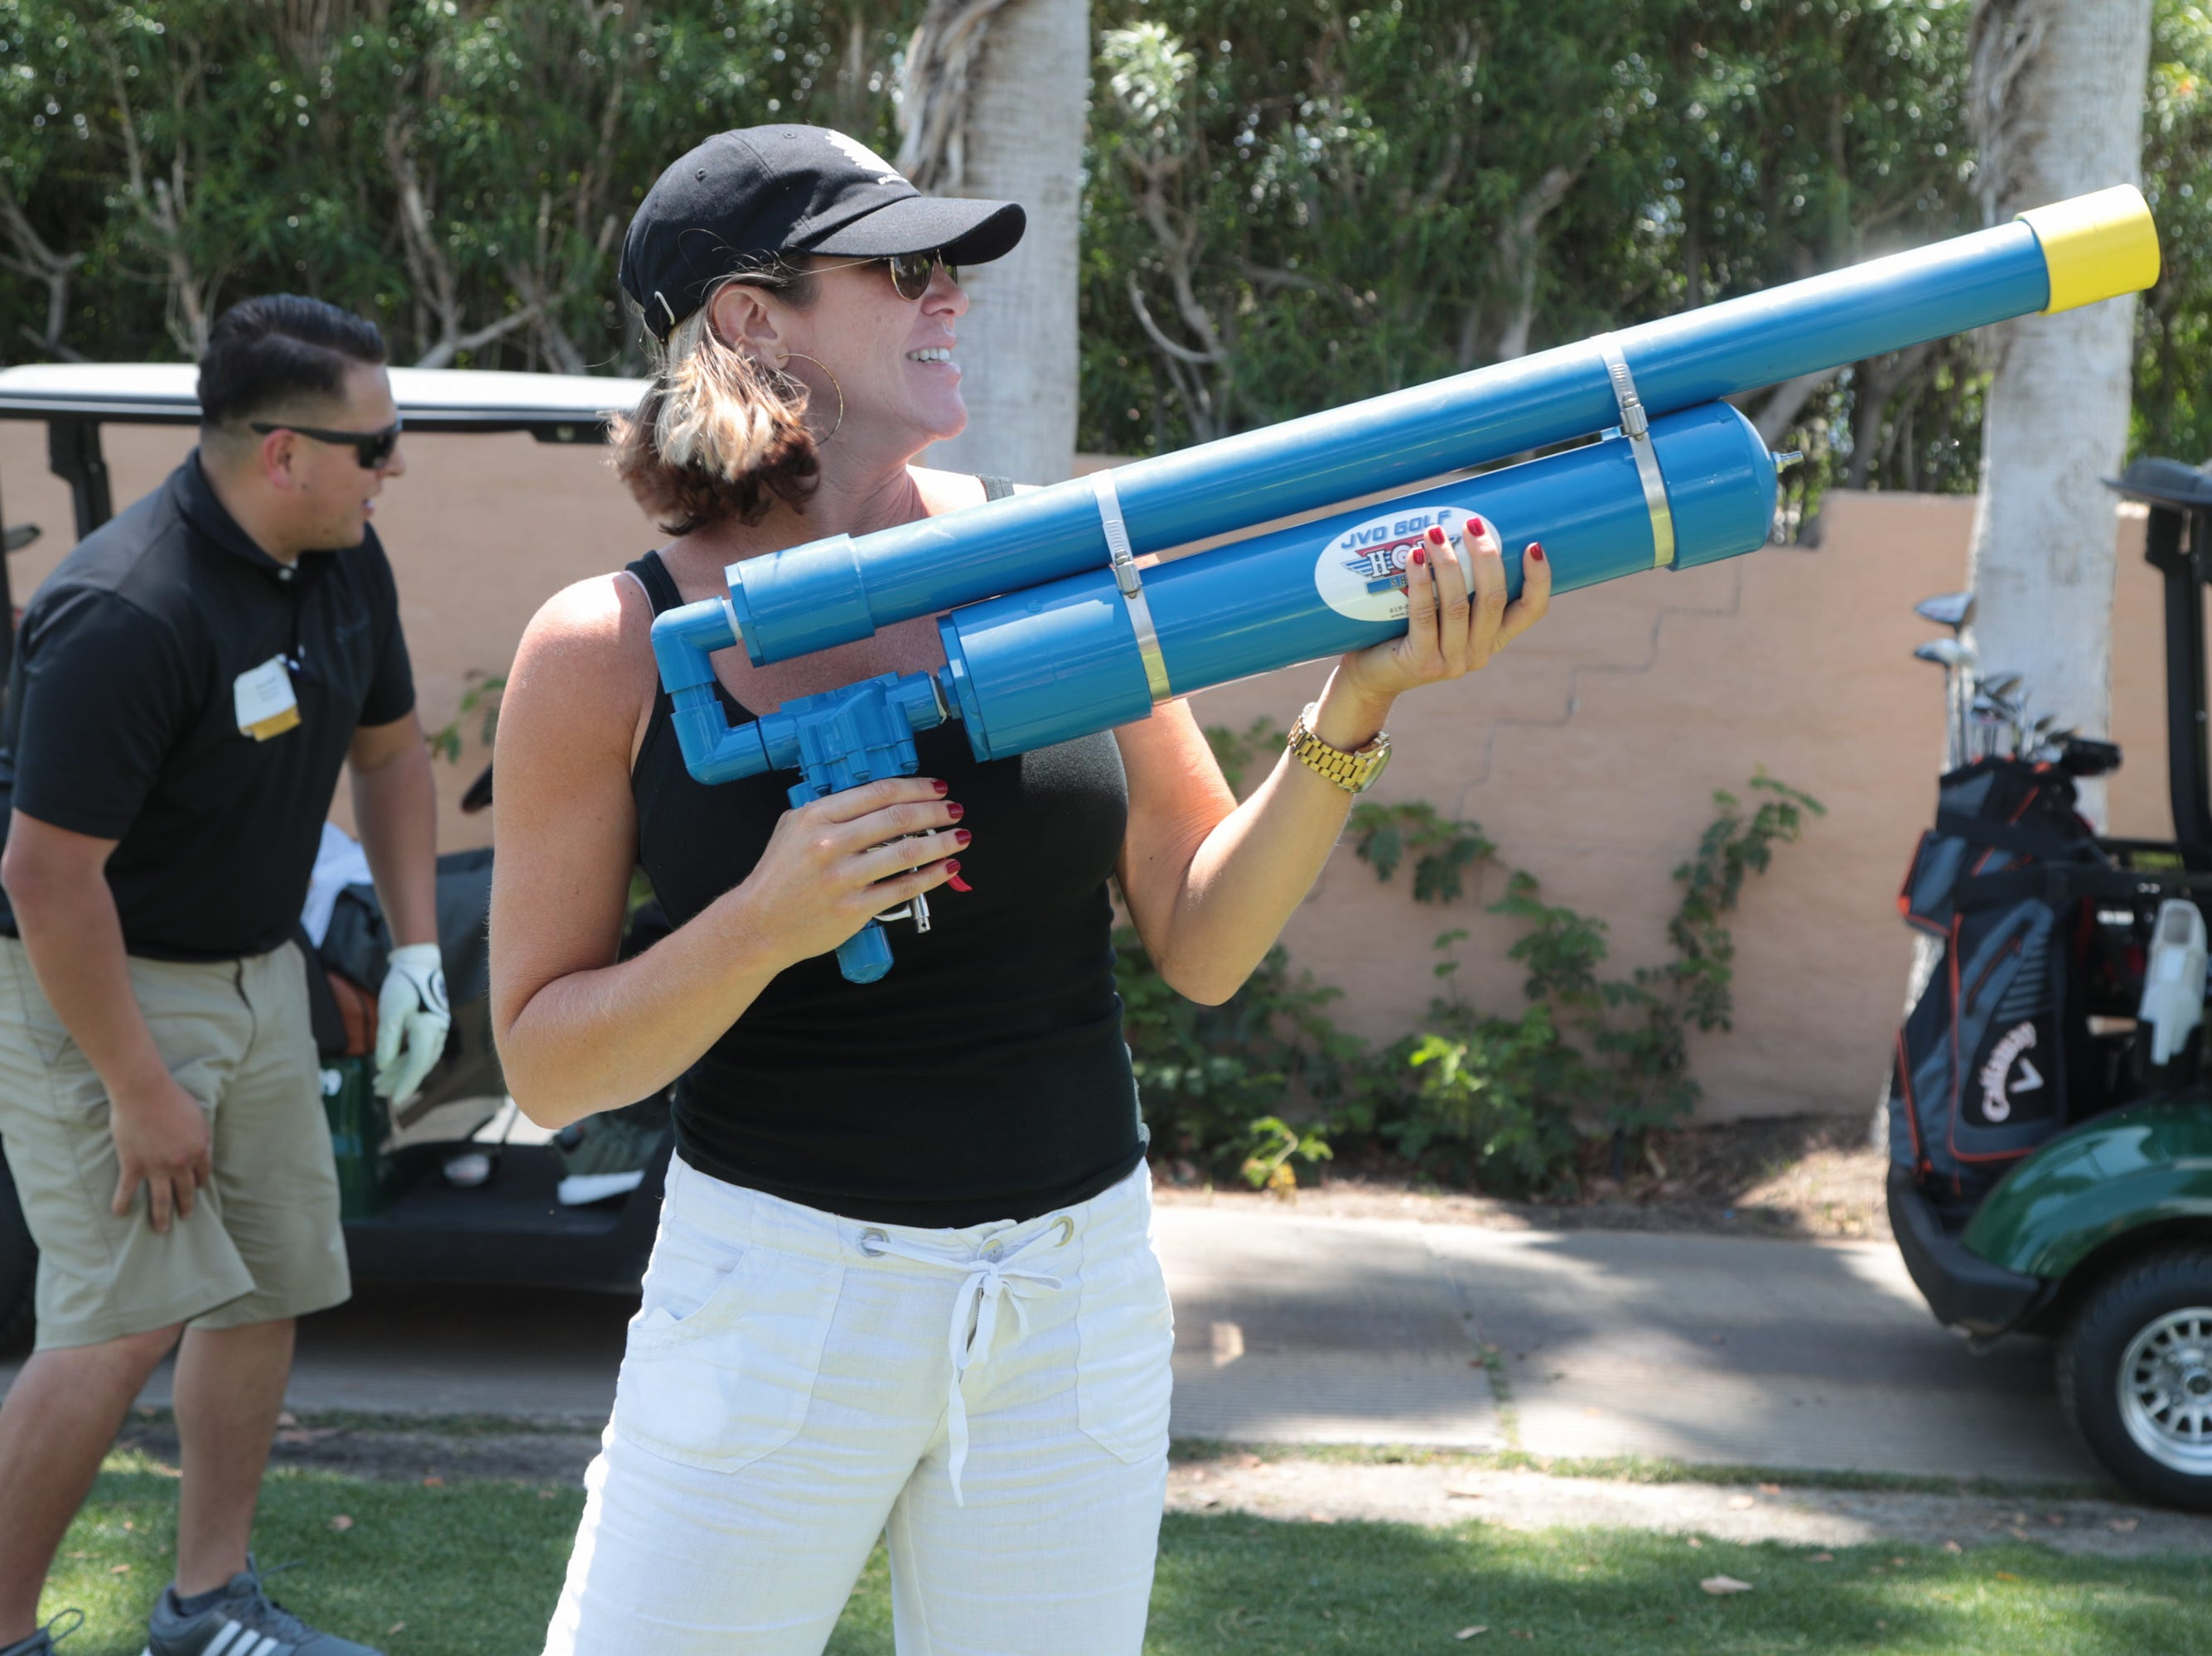 Melissa Costa shoots a golf ball in place of teeing off at the Coachella Valley Cannabis Alliance Network's charity golf tournament, Palm Desert, Calif., May 11, 2019.